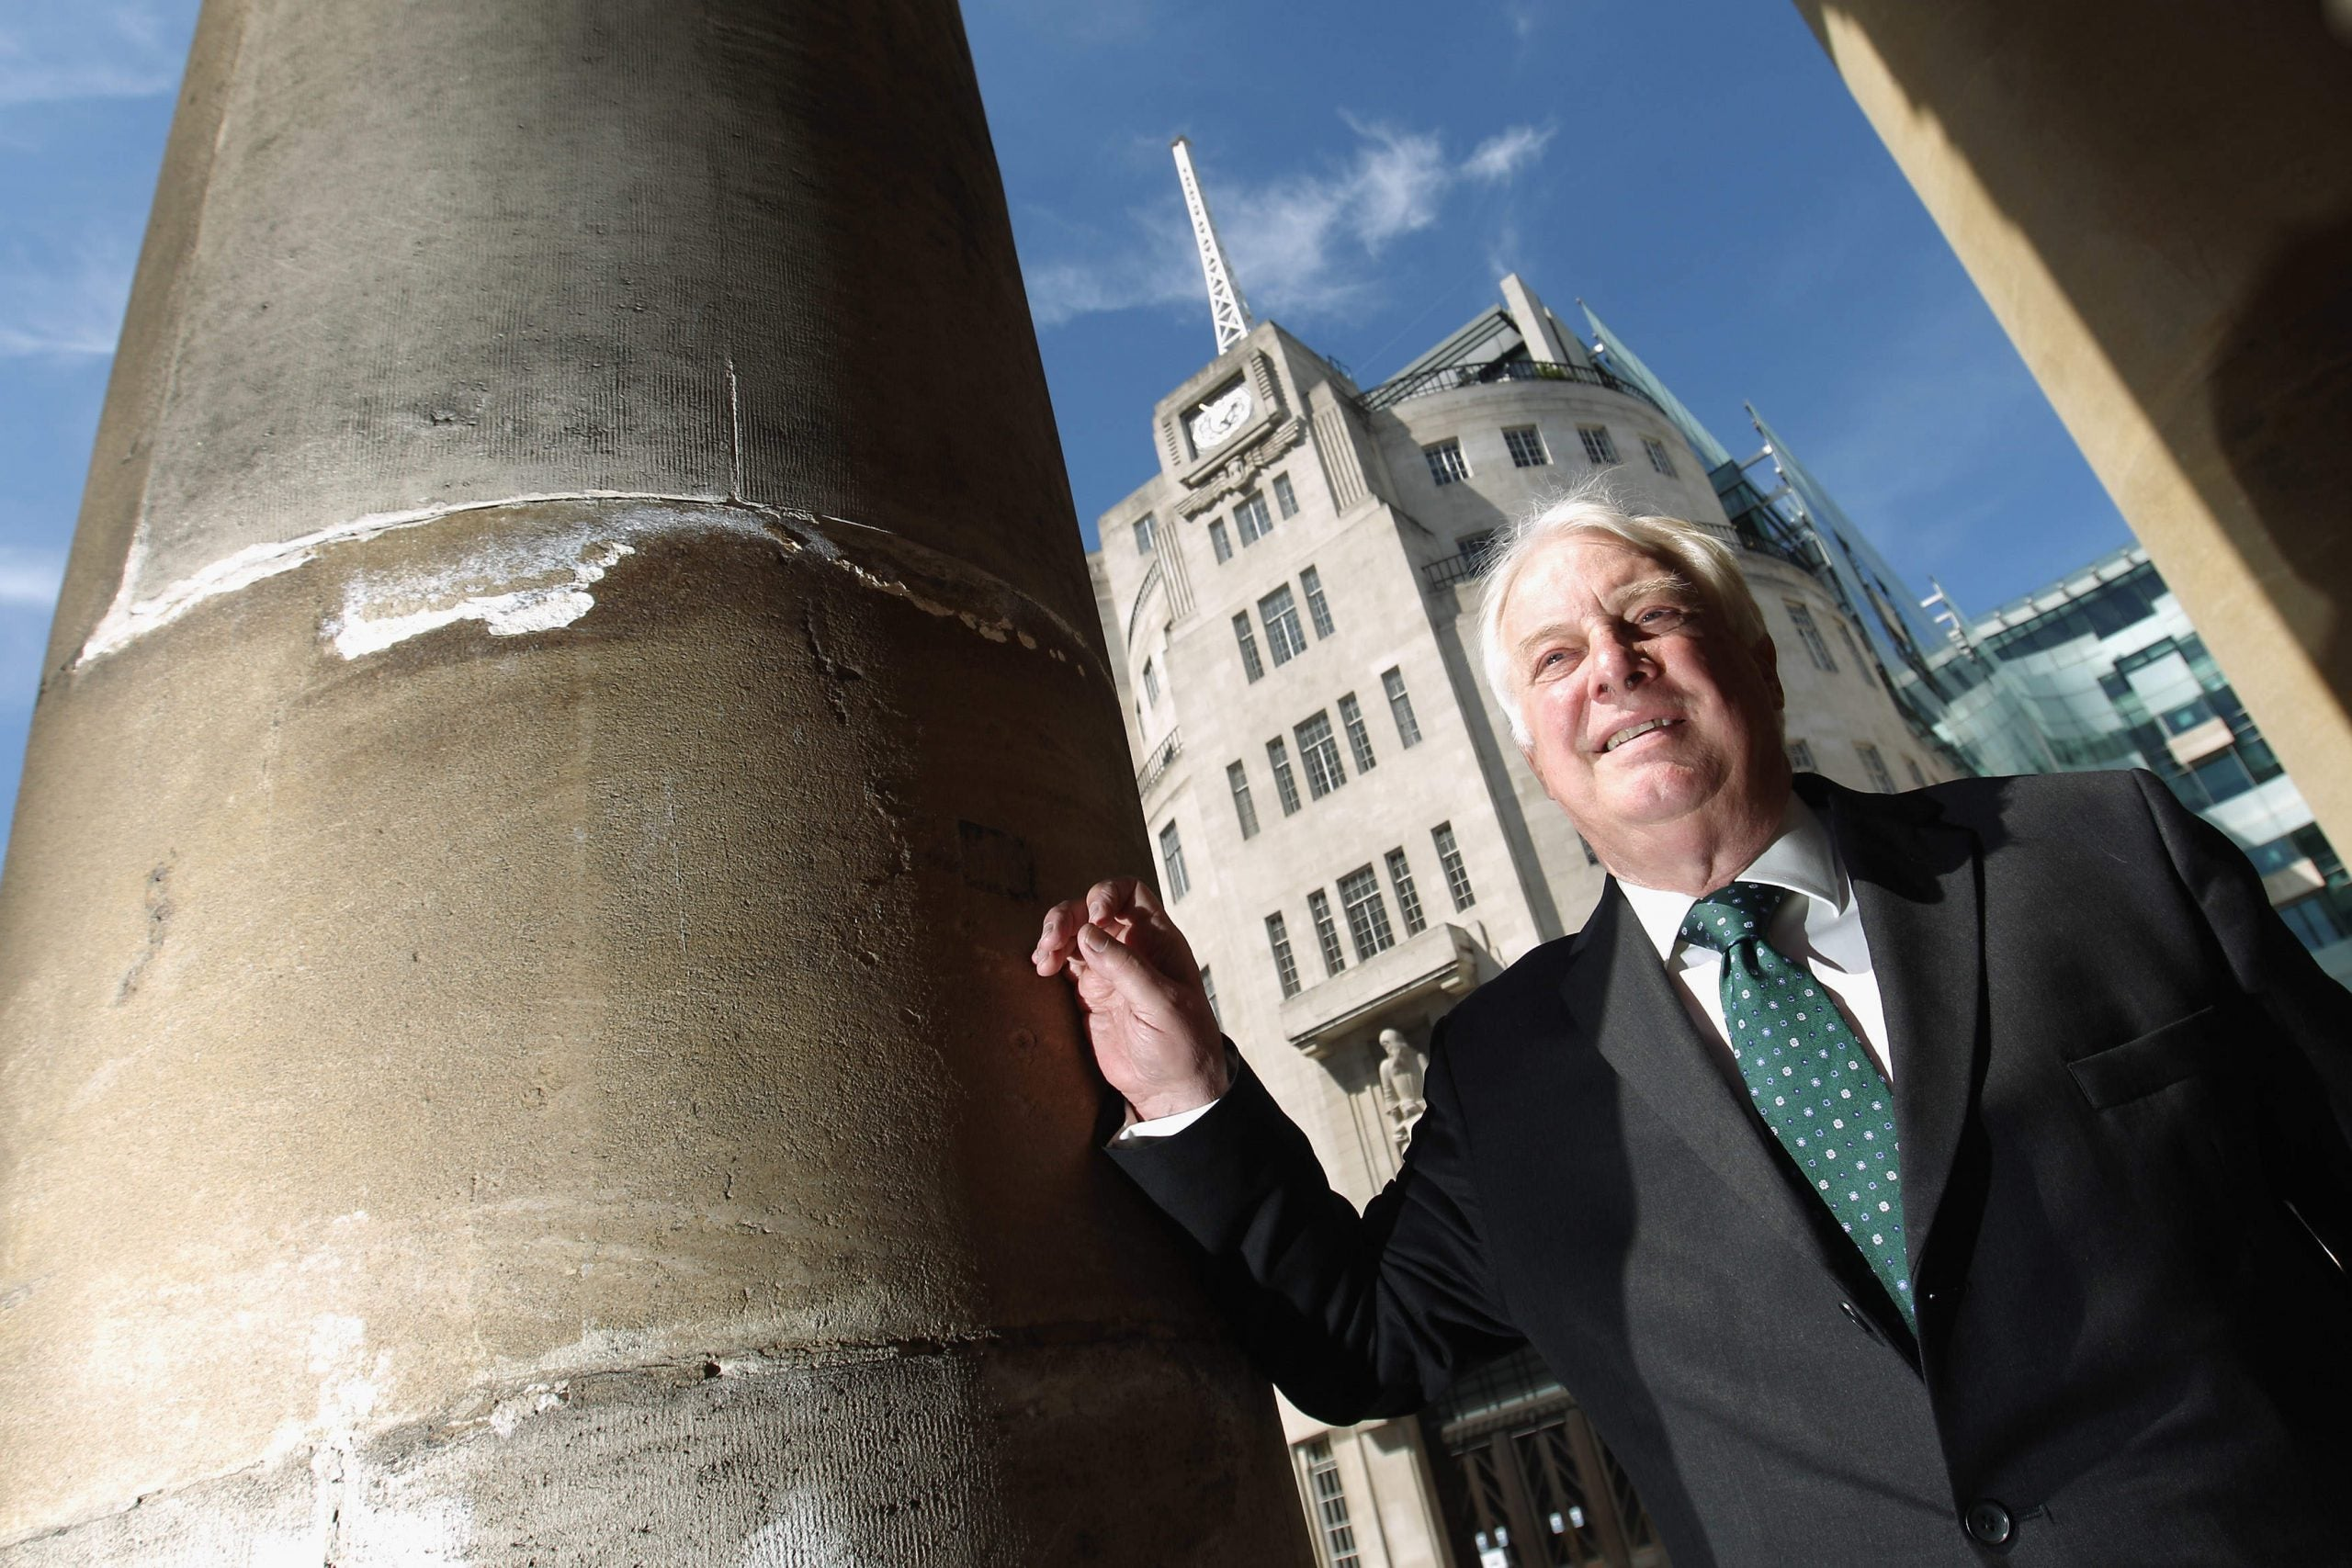 Chris Patten's memoir First Confession is wrong about the reasons for Brexit